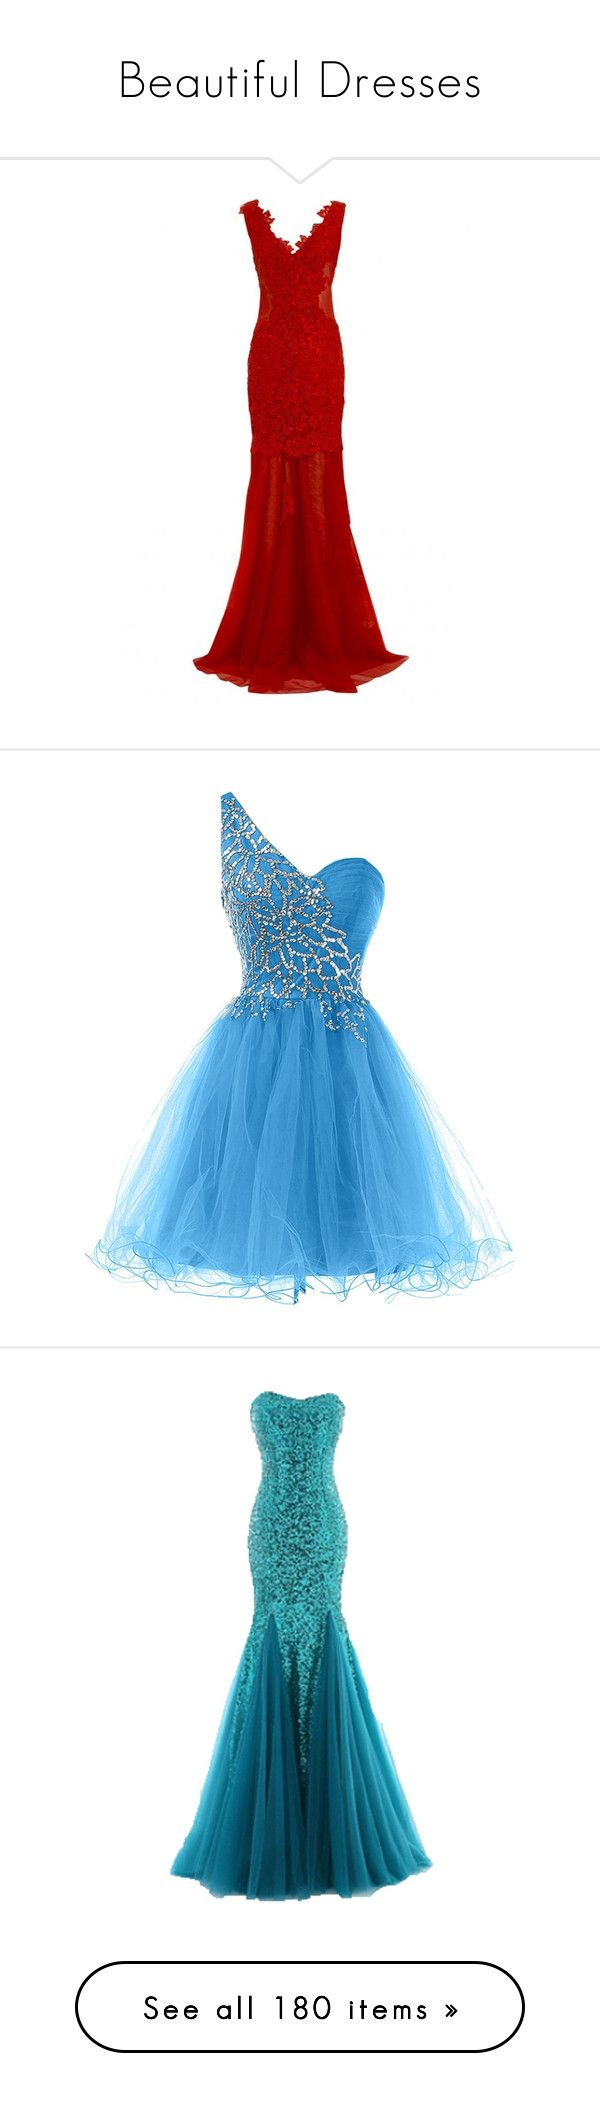 Beautiful Dresses\